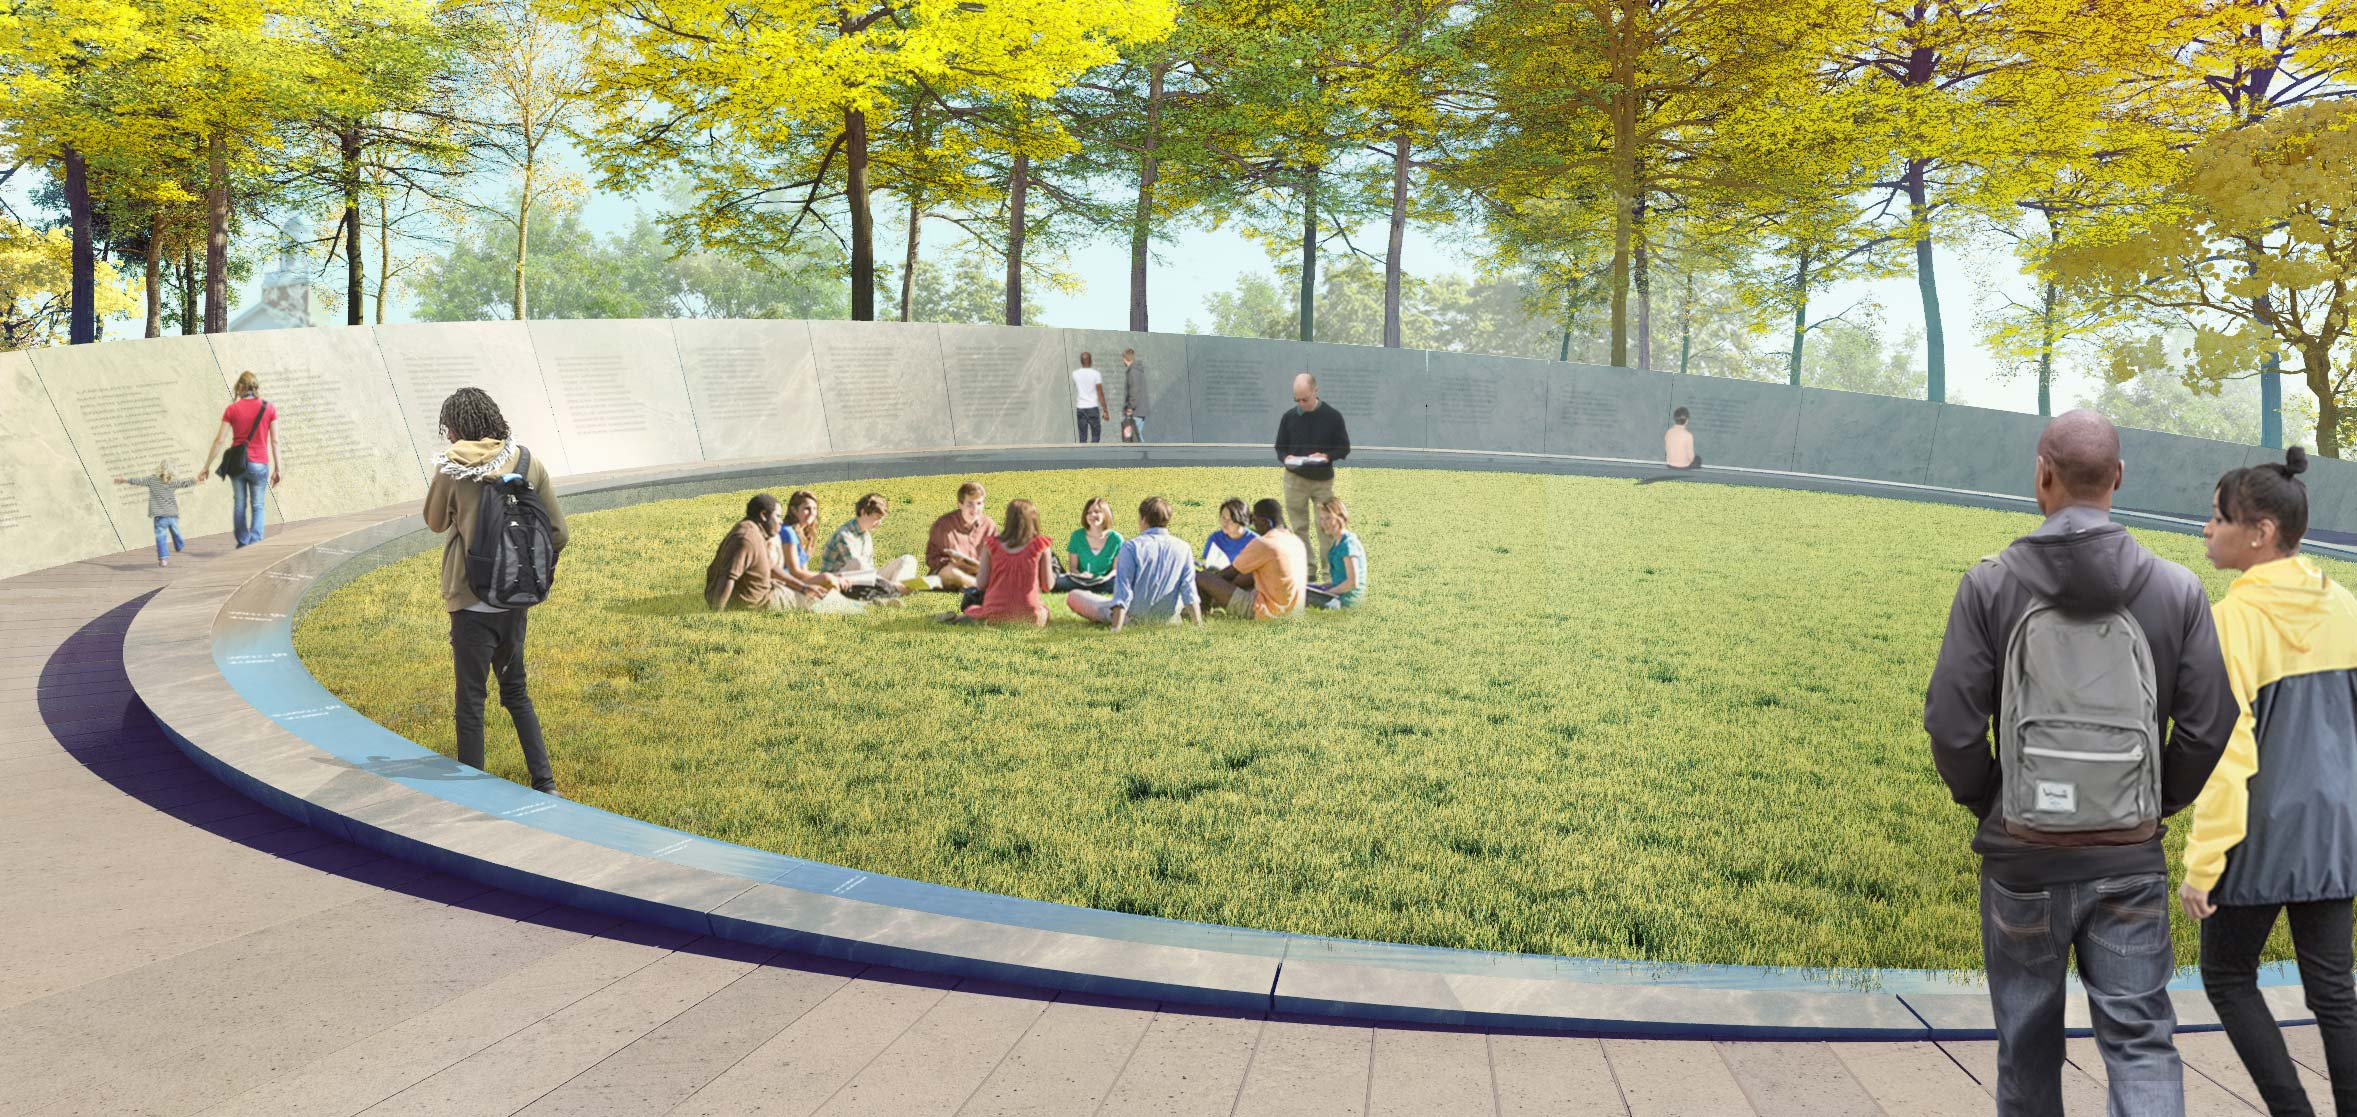 A formal dedication of the Memorial to Enslaved Laborers will be held April 11. (Image courtesy of Höweler+Yoon)